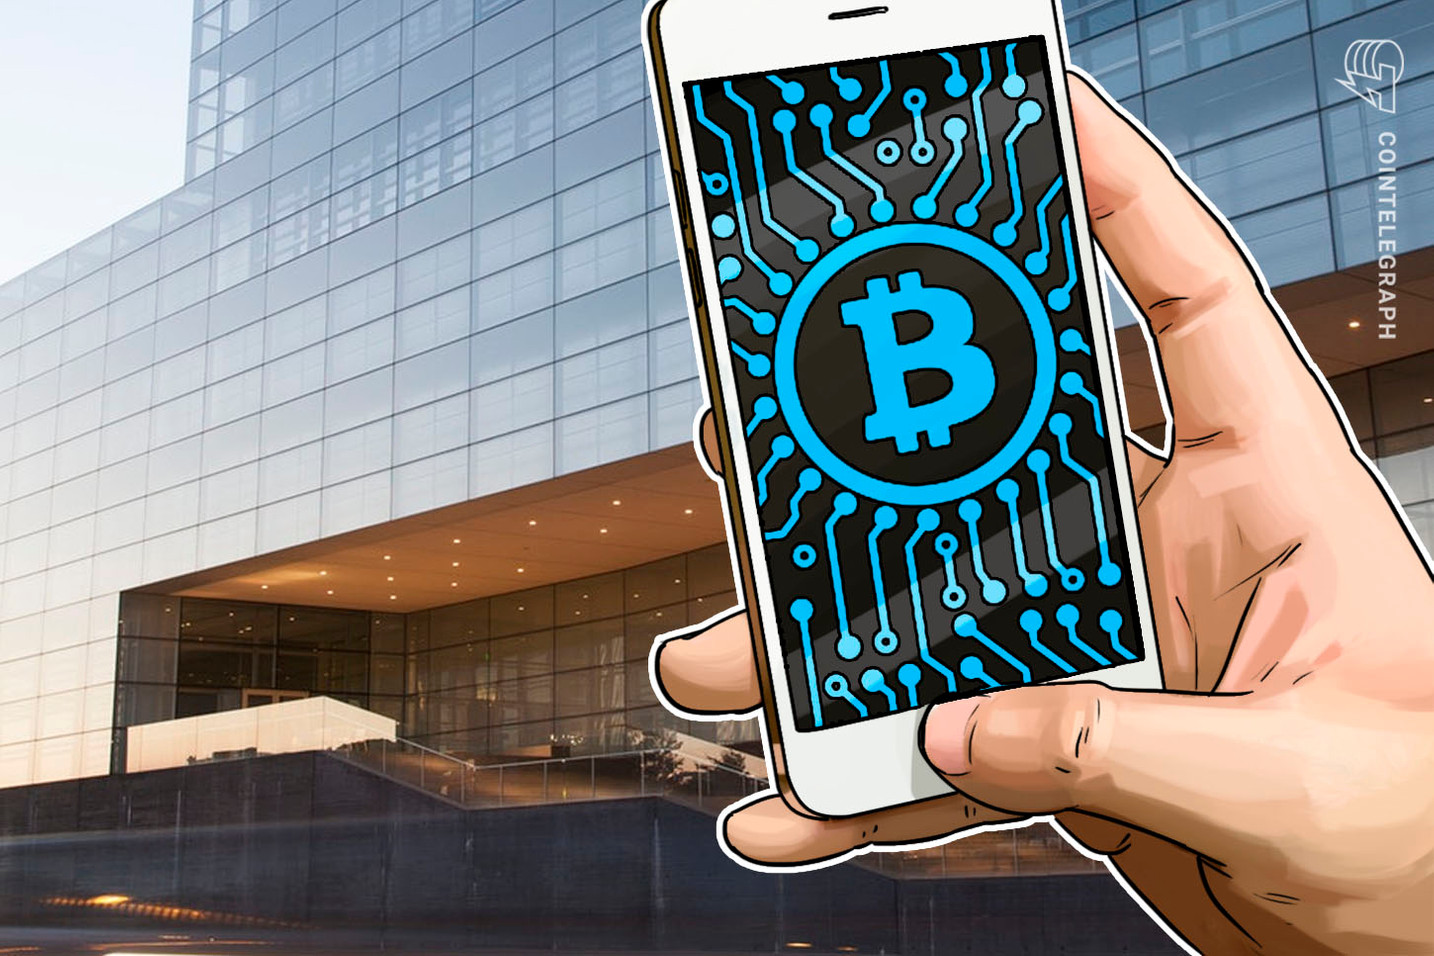 Swiss Electronics Supplier SIRIN Labs to Launch Its First Blockchain-Based Smartphone